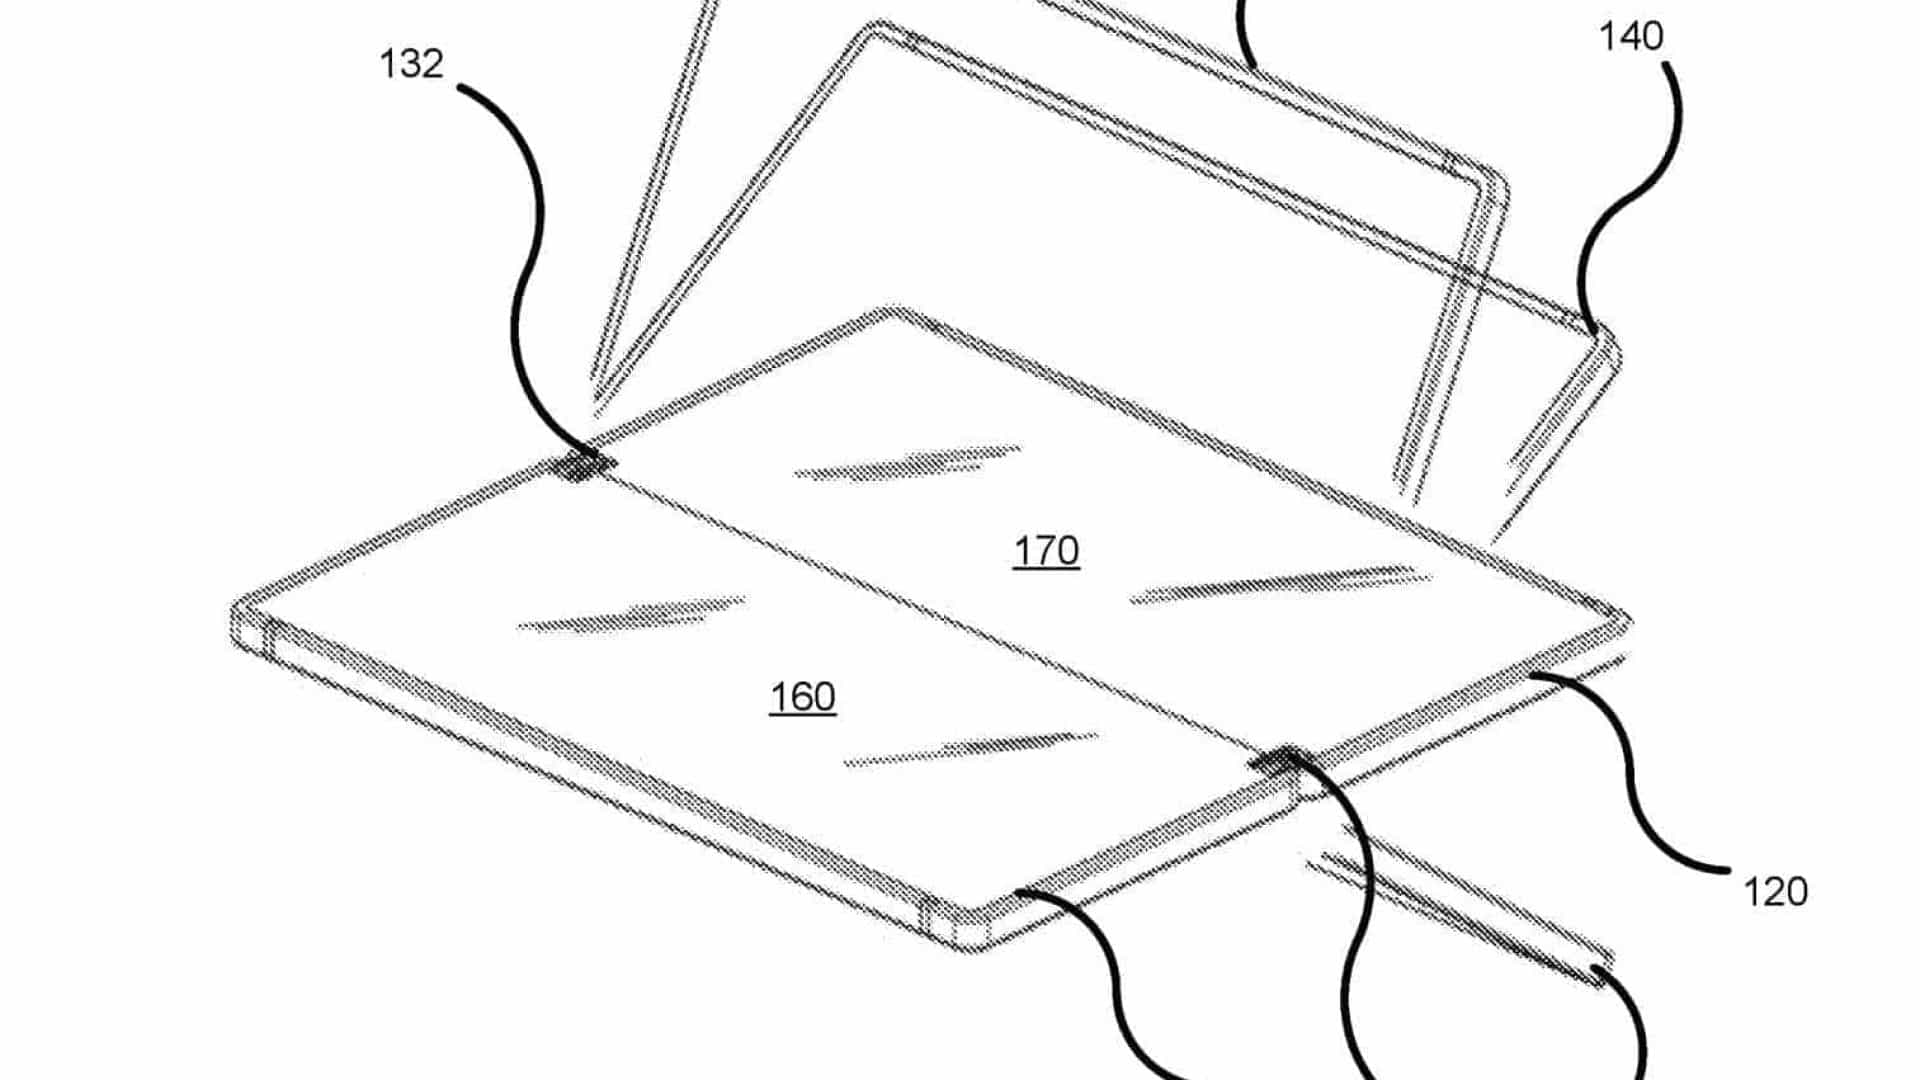 Surface Phone continua 'vivo' e terá design inovador